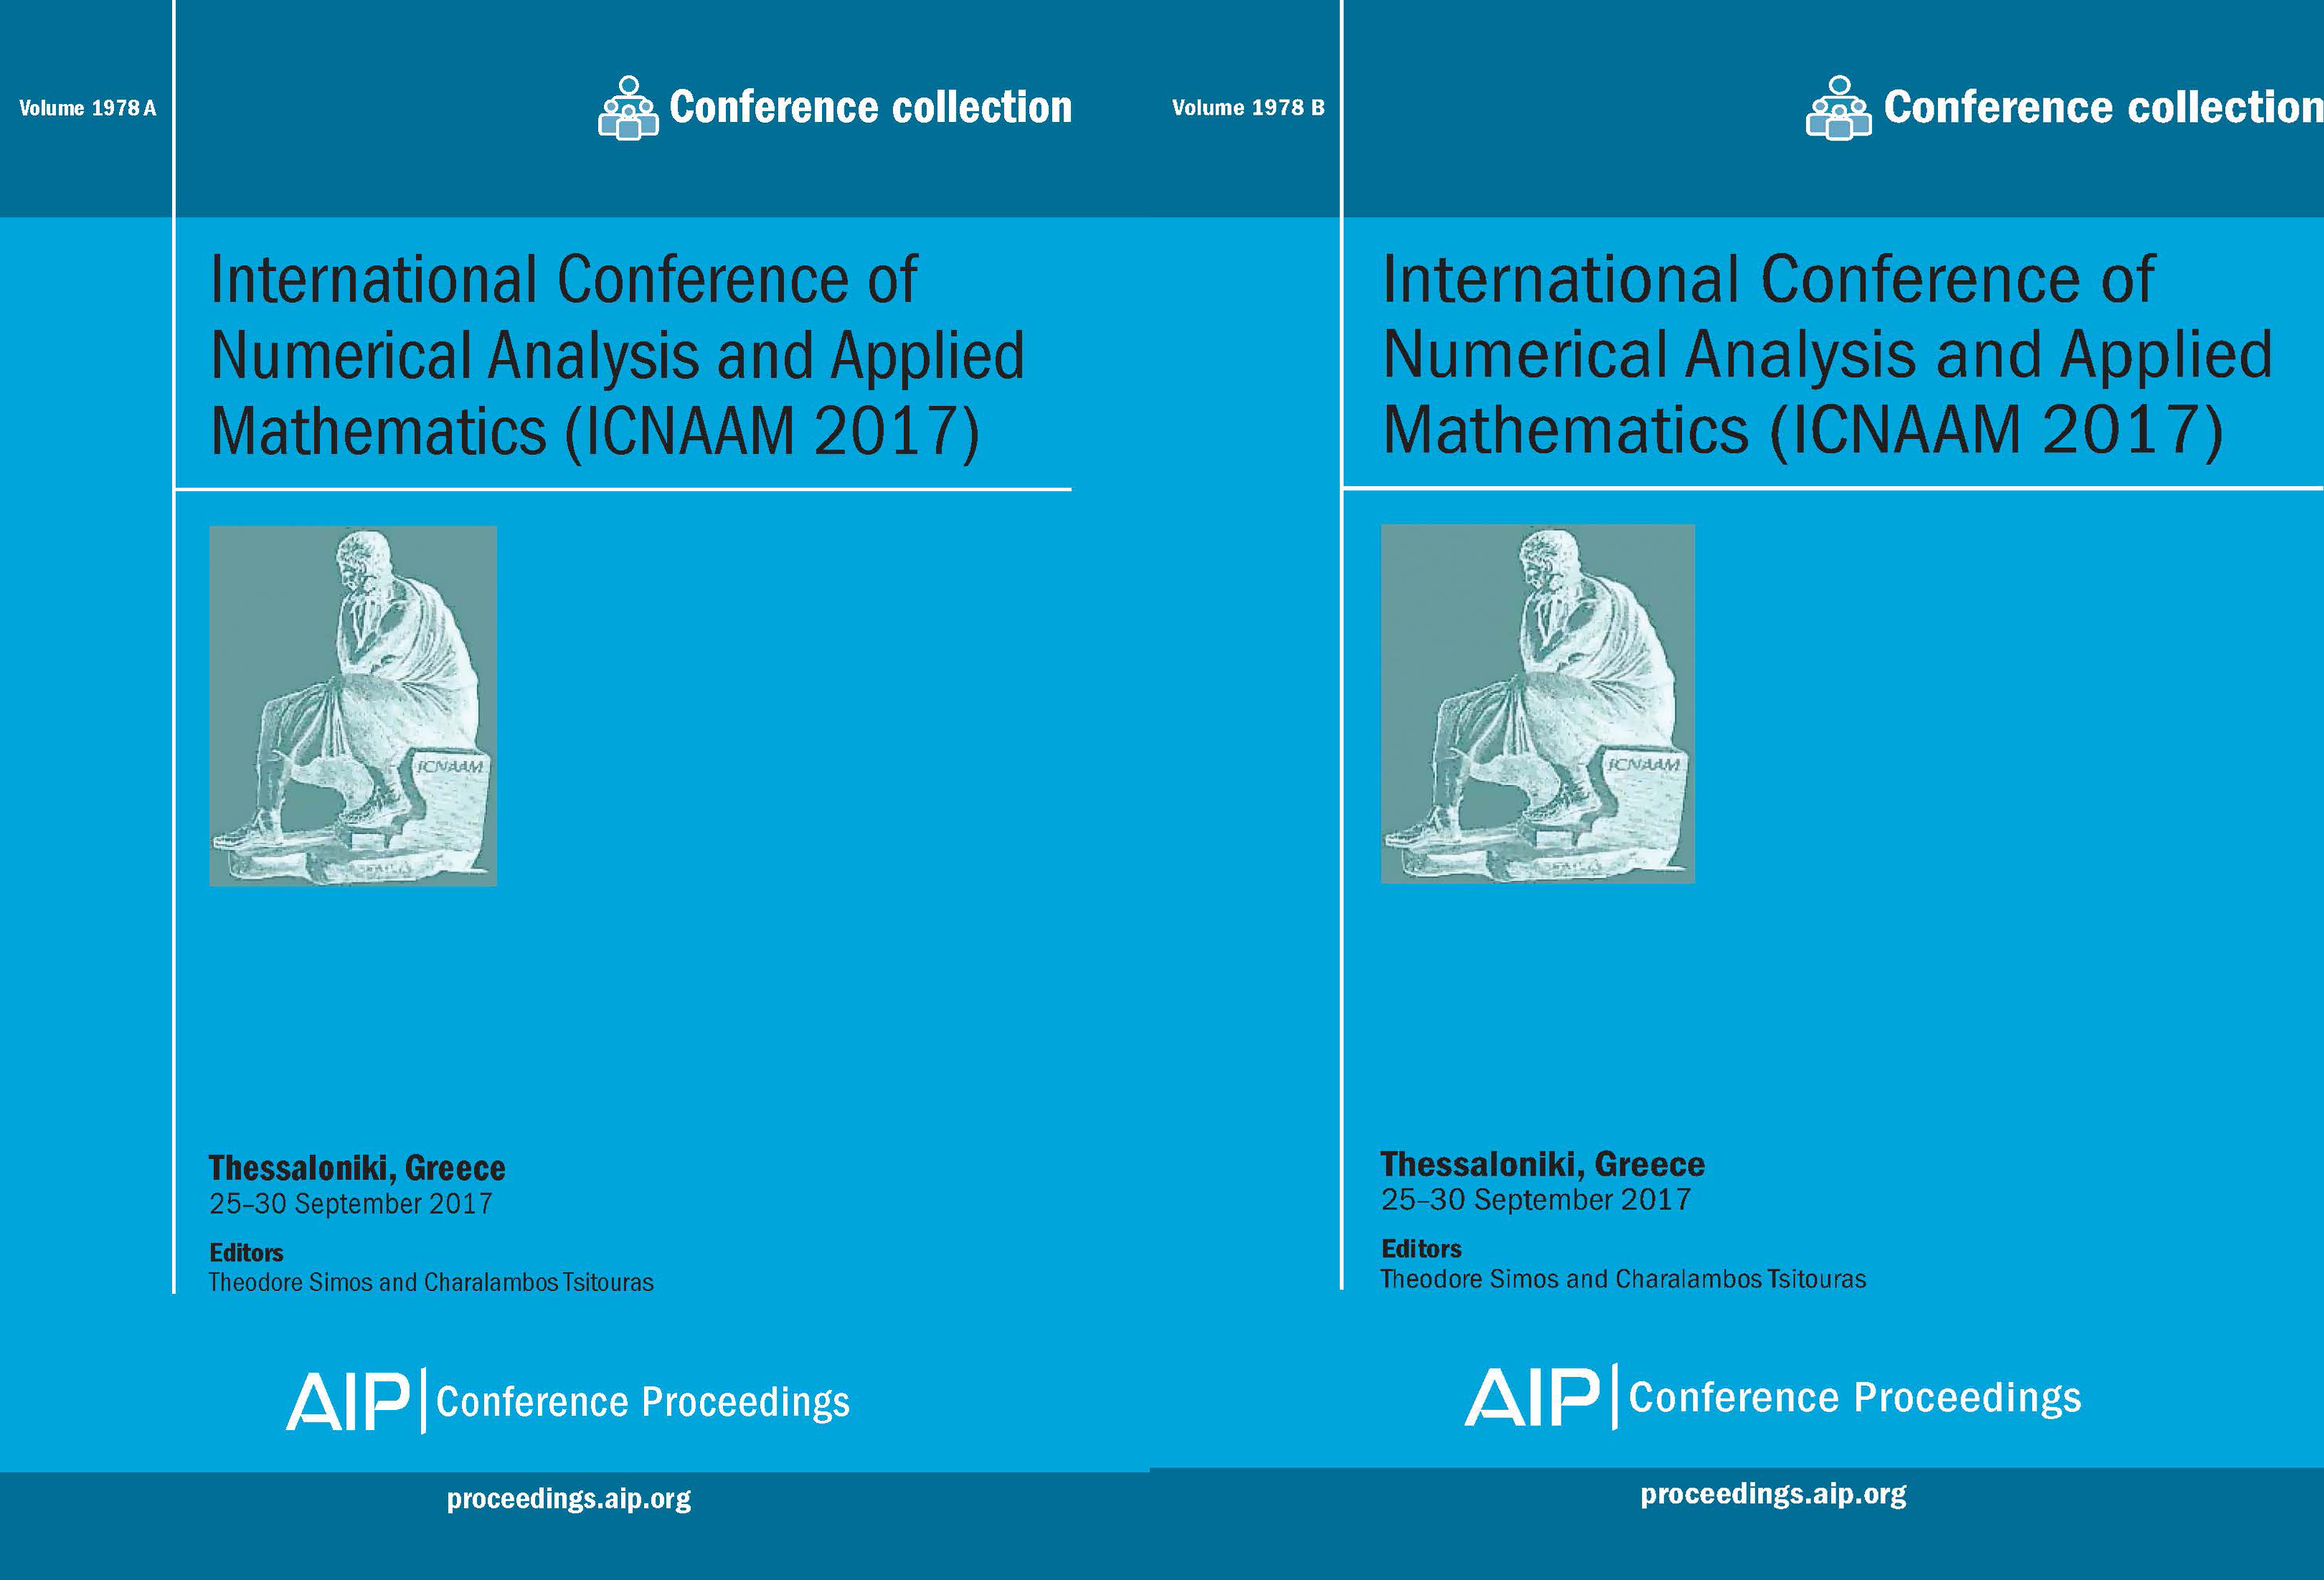 Volume 1978: International Conference of Numerical Analysis